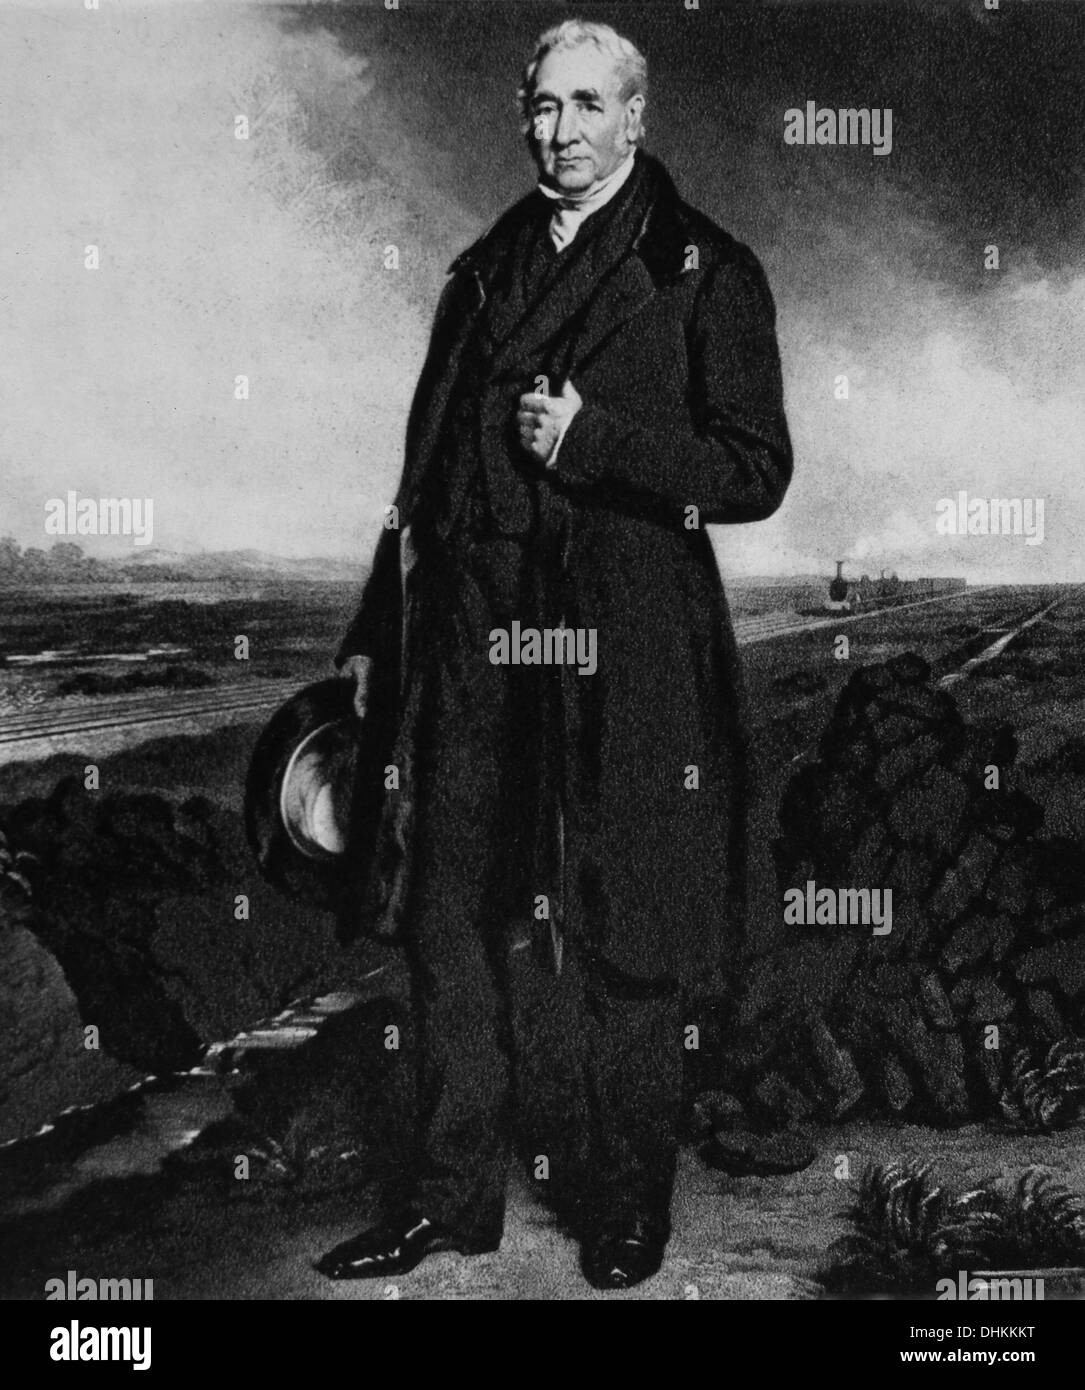 George Stephenson (1781-1848), English Engineer, Noted Locomotive Builder, Engraving, 1873 - Stock Image